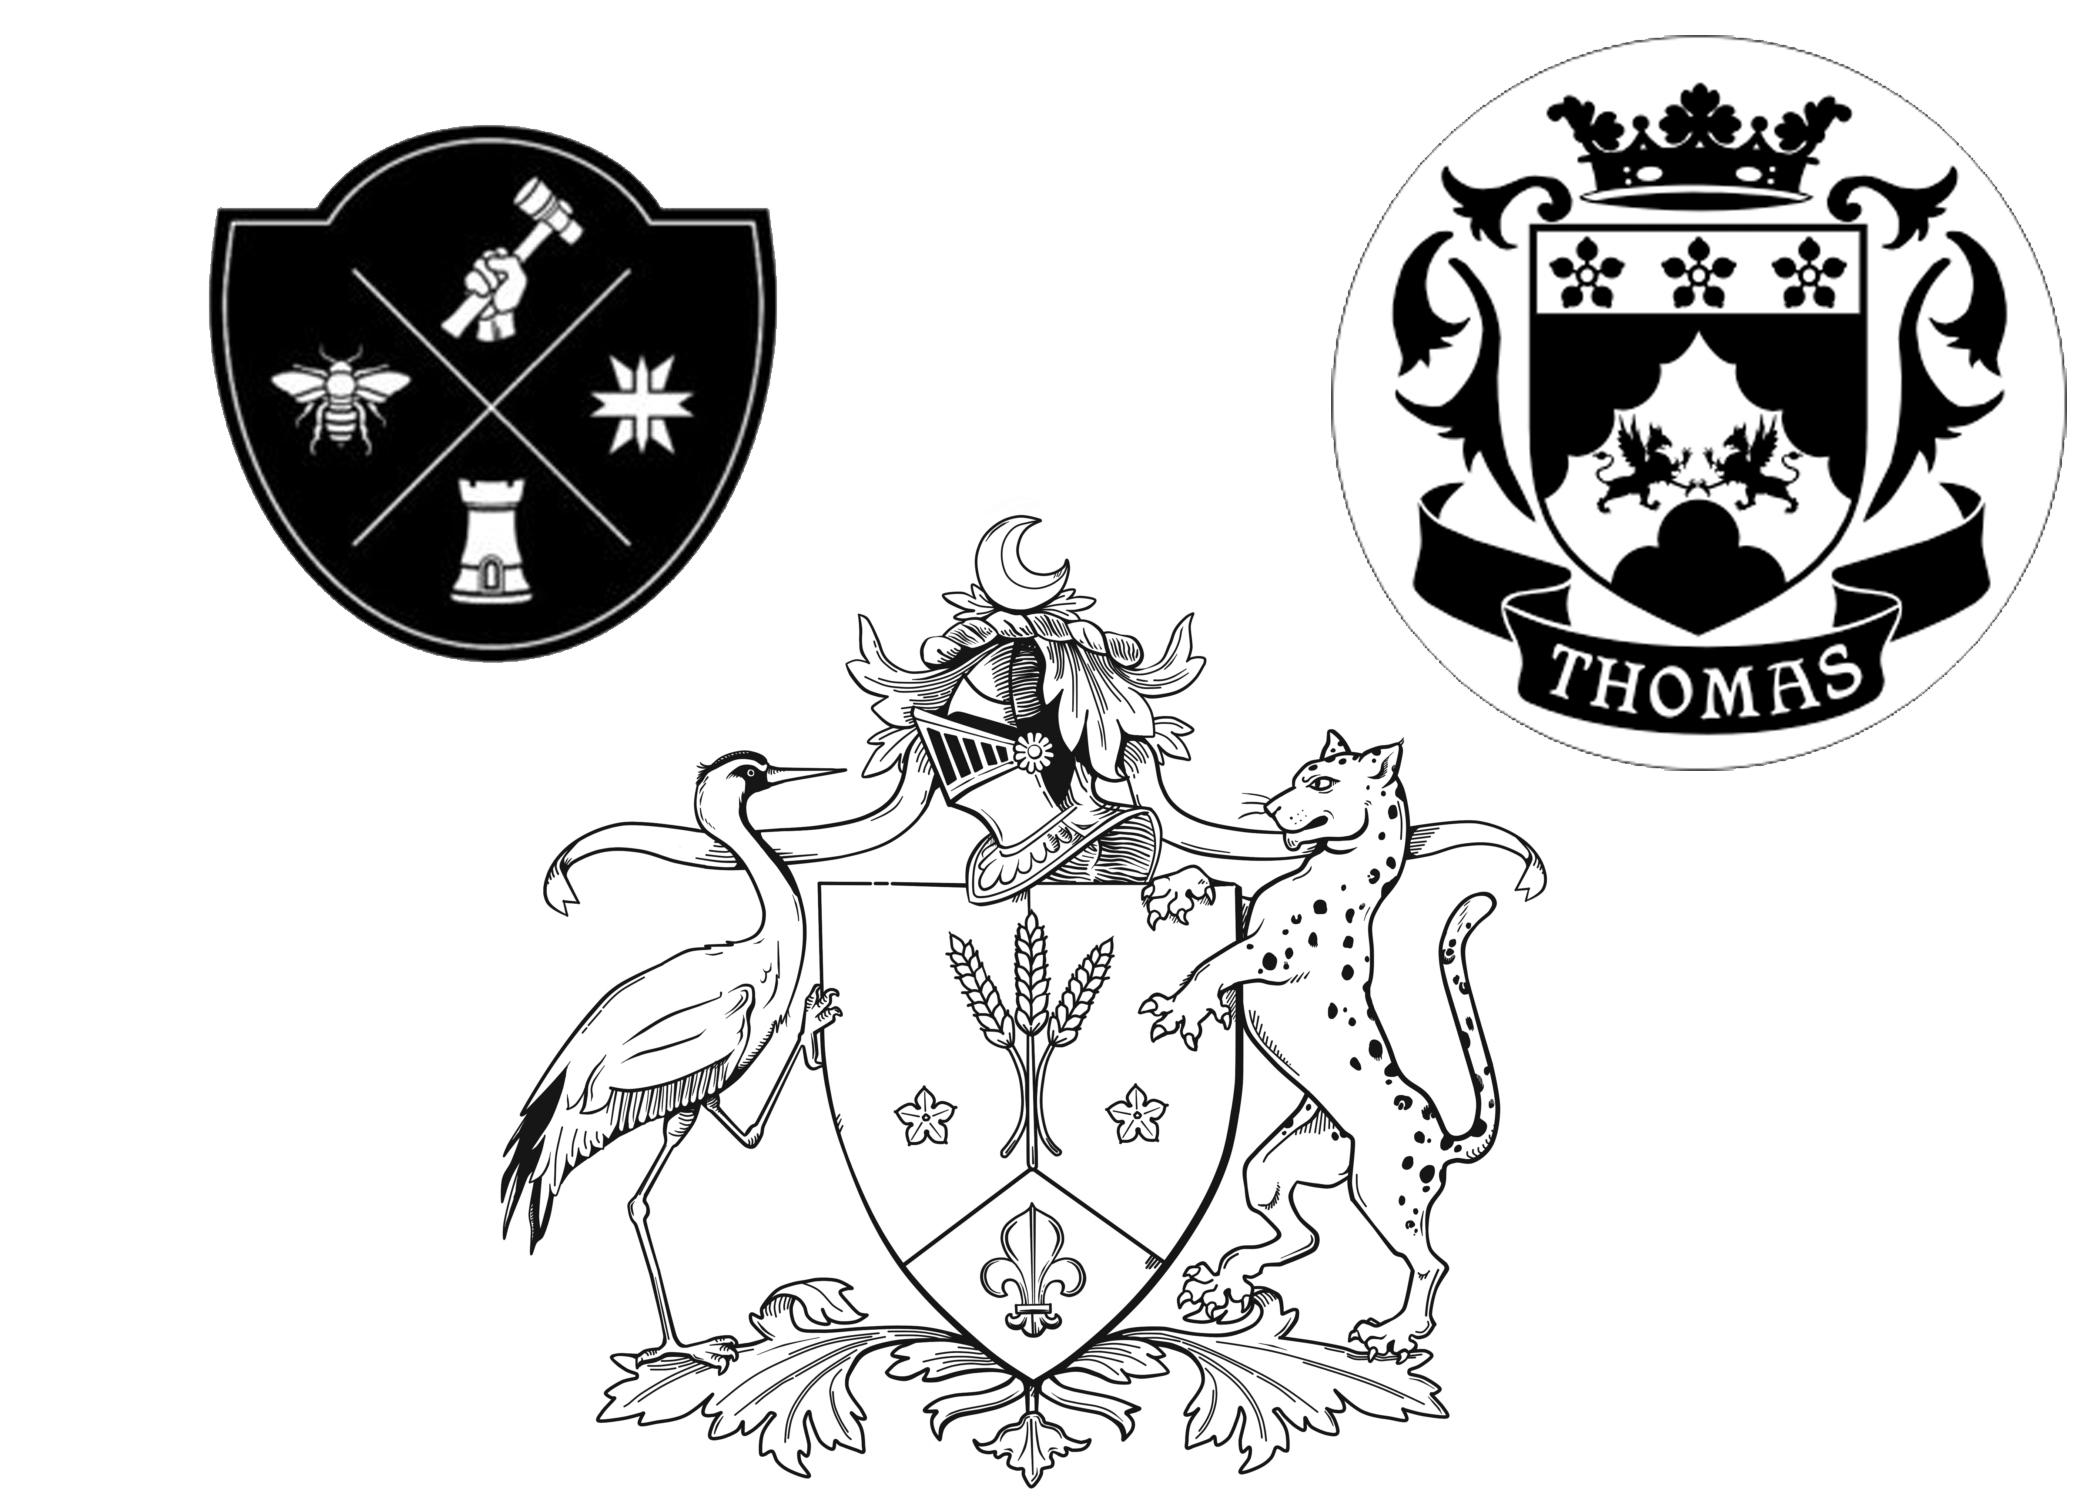 Youngblood family crest skillshare projects youngblood family crest abd7411a these were some of the crests i liked i decided to keep mine monocromatic as well and just kept these roughly in my buycottarizona Image collections